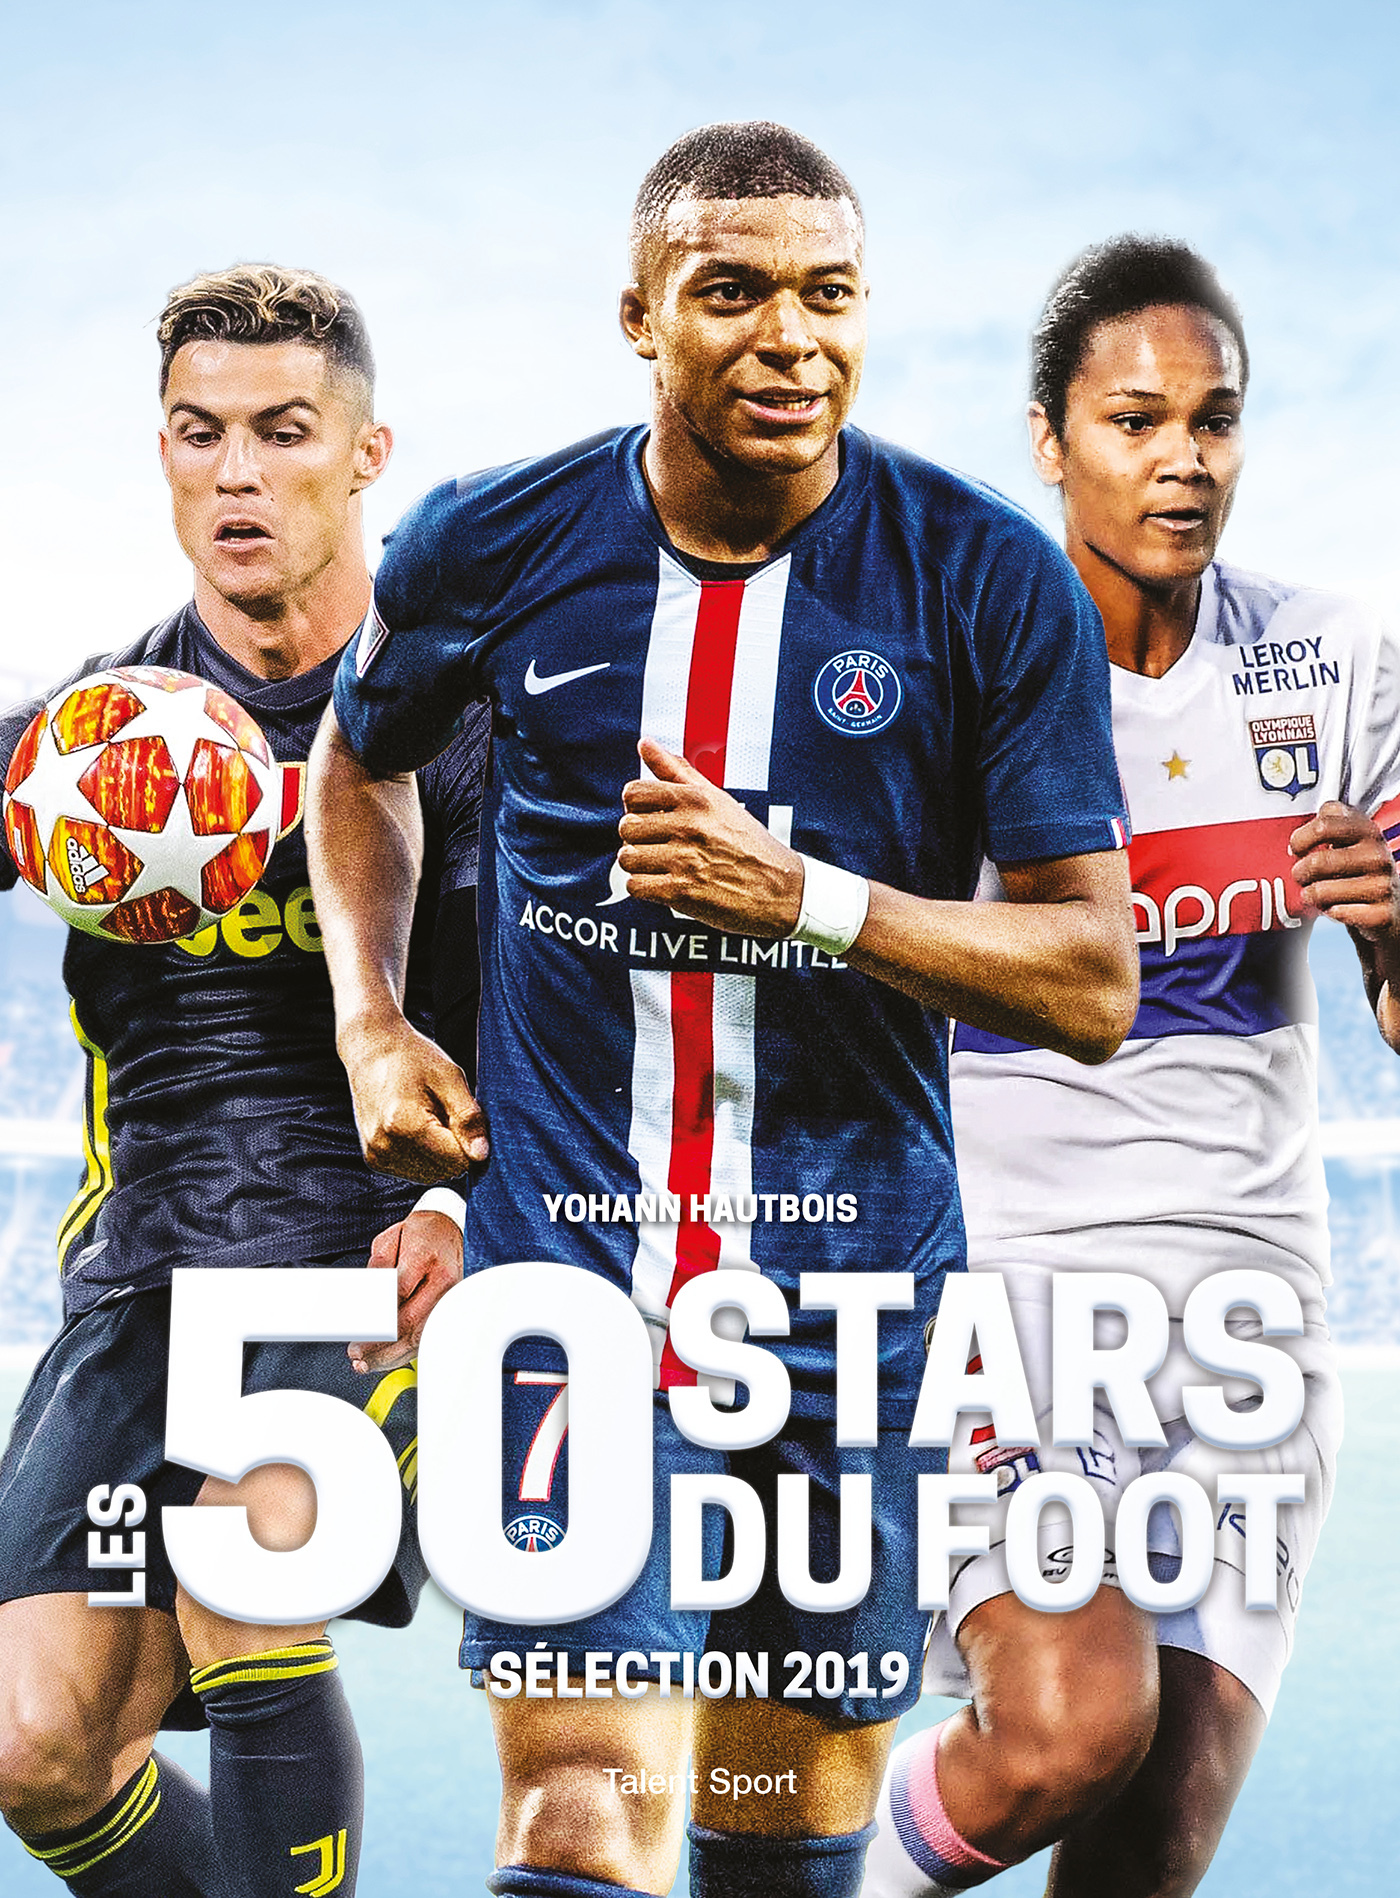 LES 50 STARS DU FOOT - SELECTION 2019